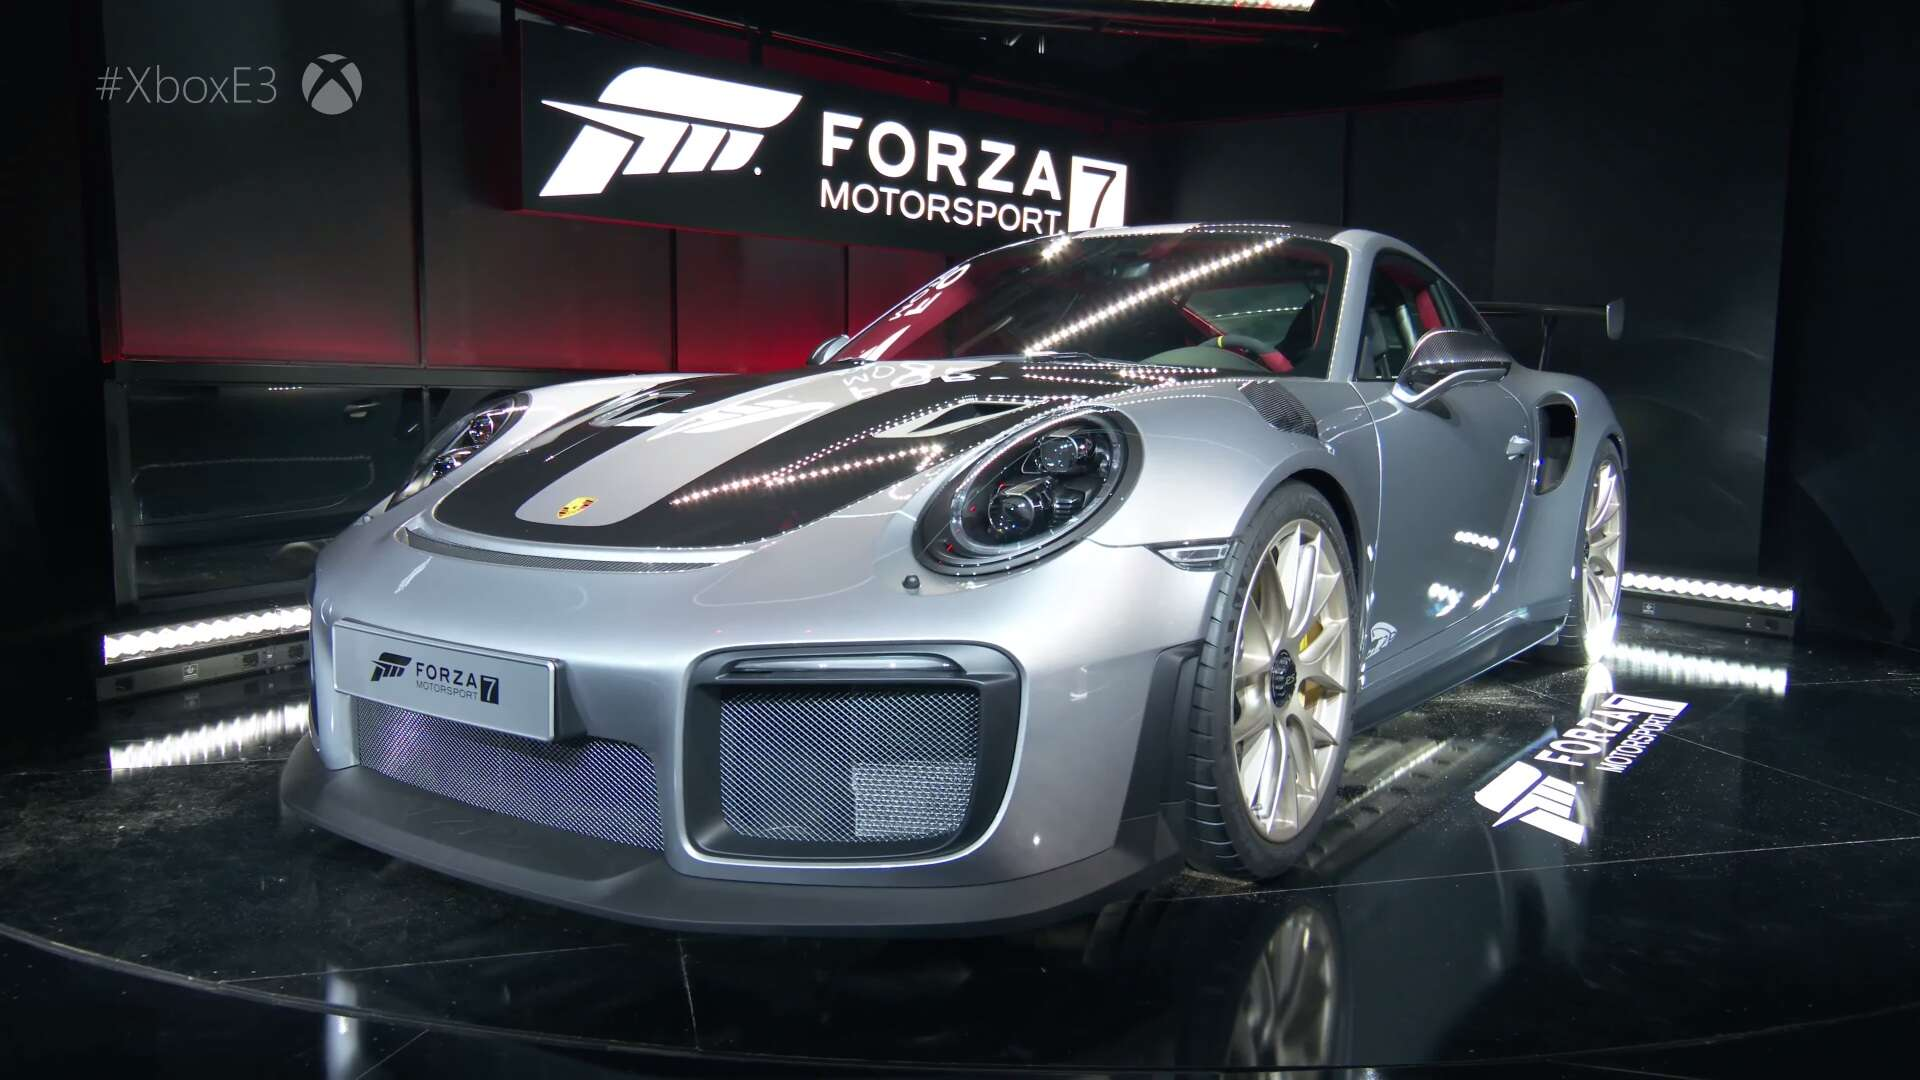 2018 porsche 911 gt2 rs revealed along with forza. Black Bedroom Furniture Sets. Home Design Ideas